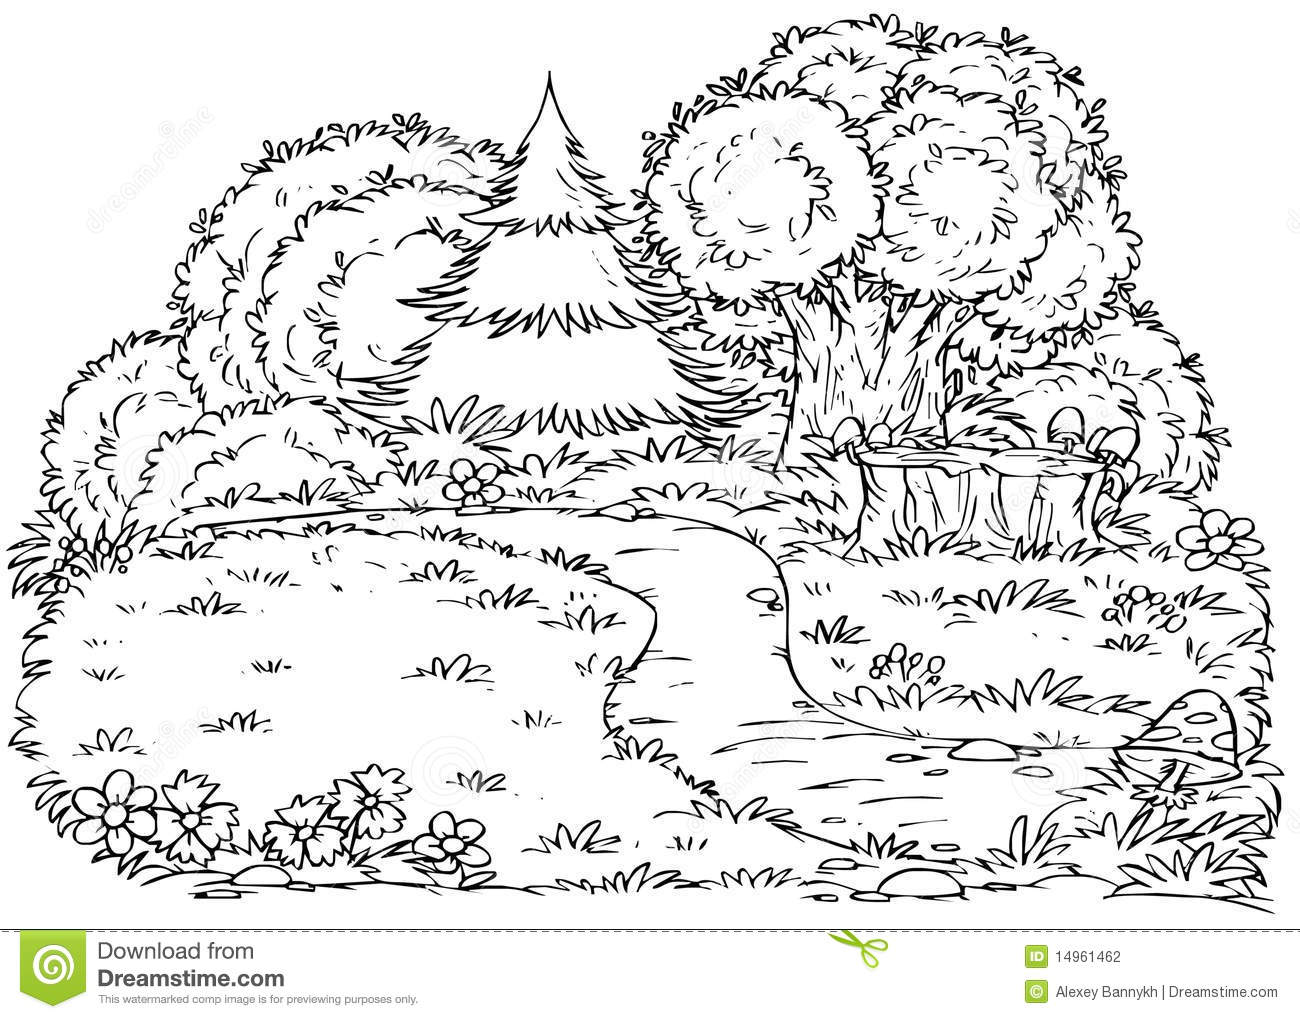 Deciduous Forest Coloring Sheets - High Quality Coloring Pages